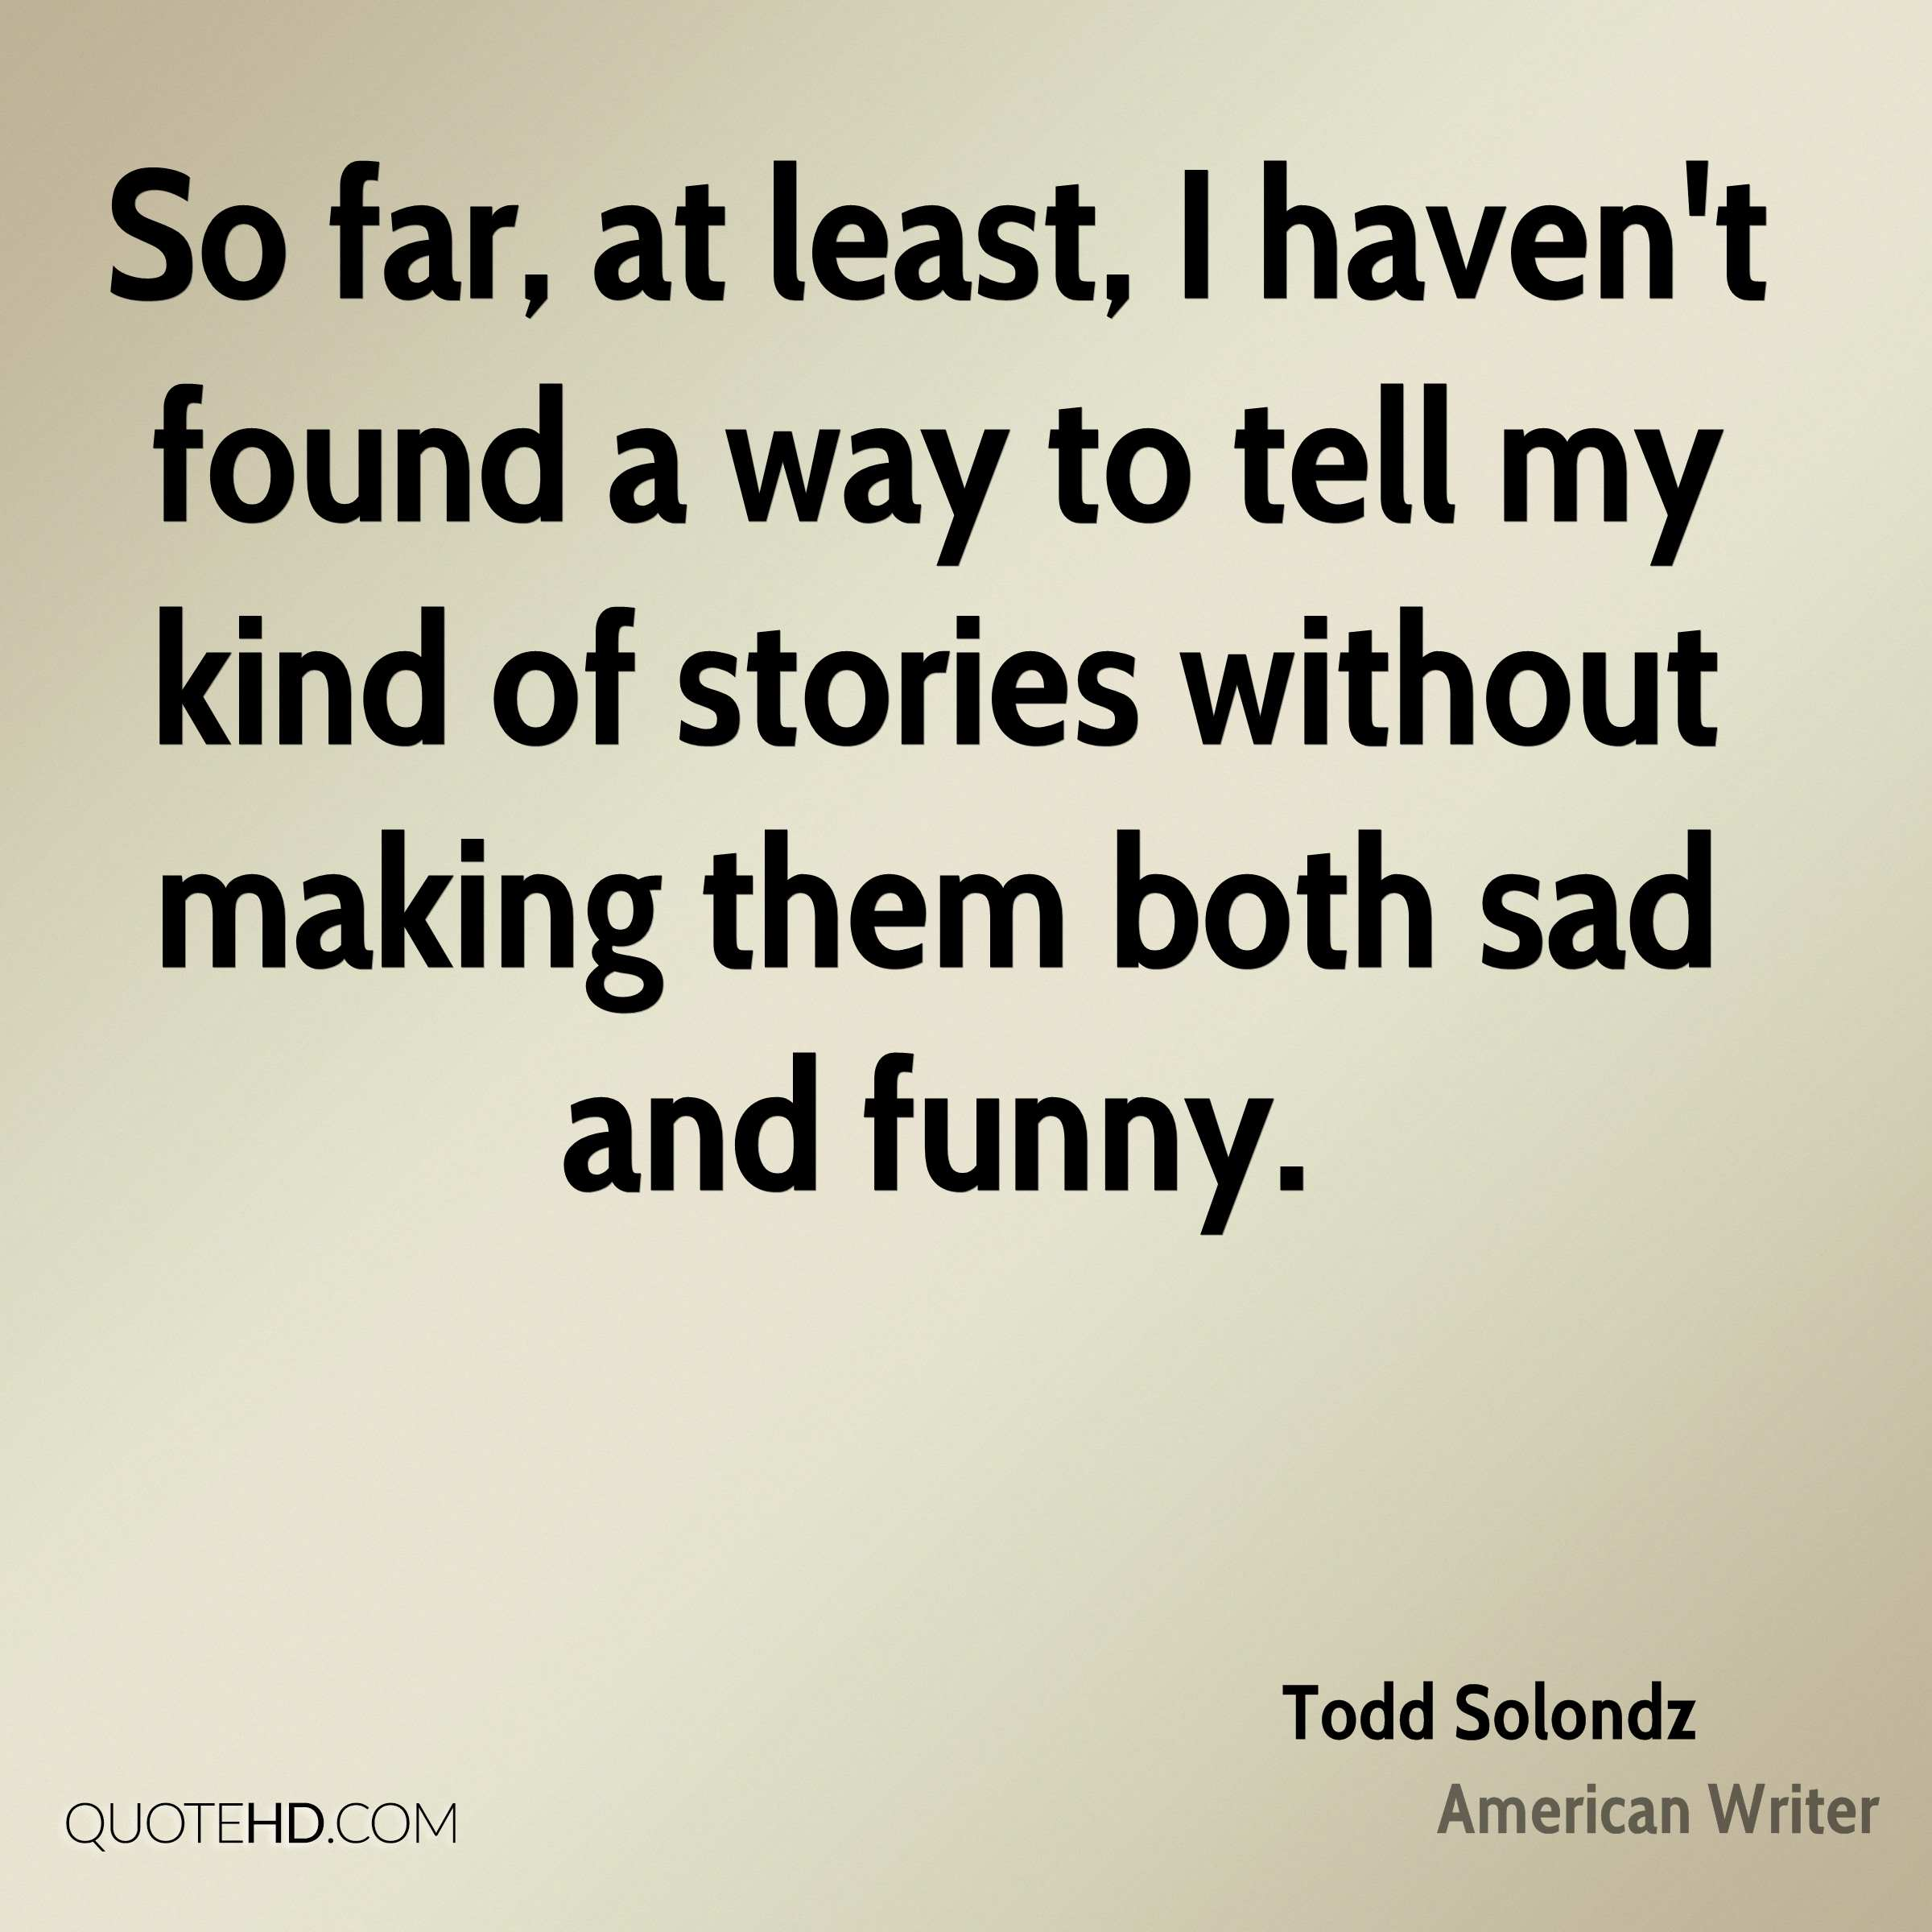 So far, at least, I haven't found a way to tell my kind of stories without making them both sad and funny.